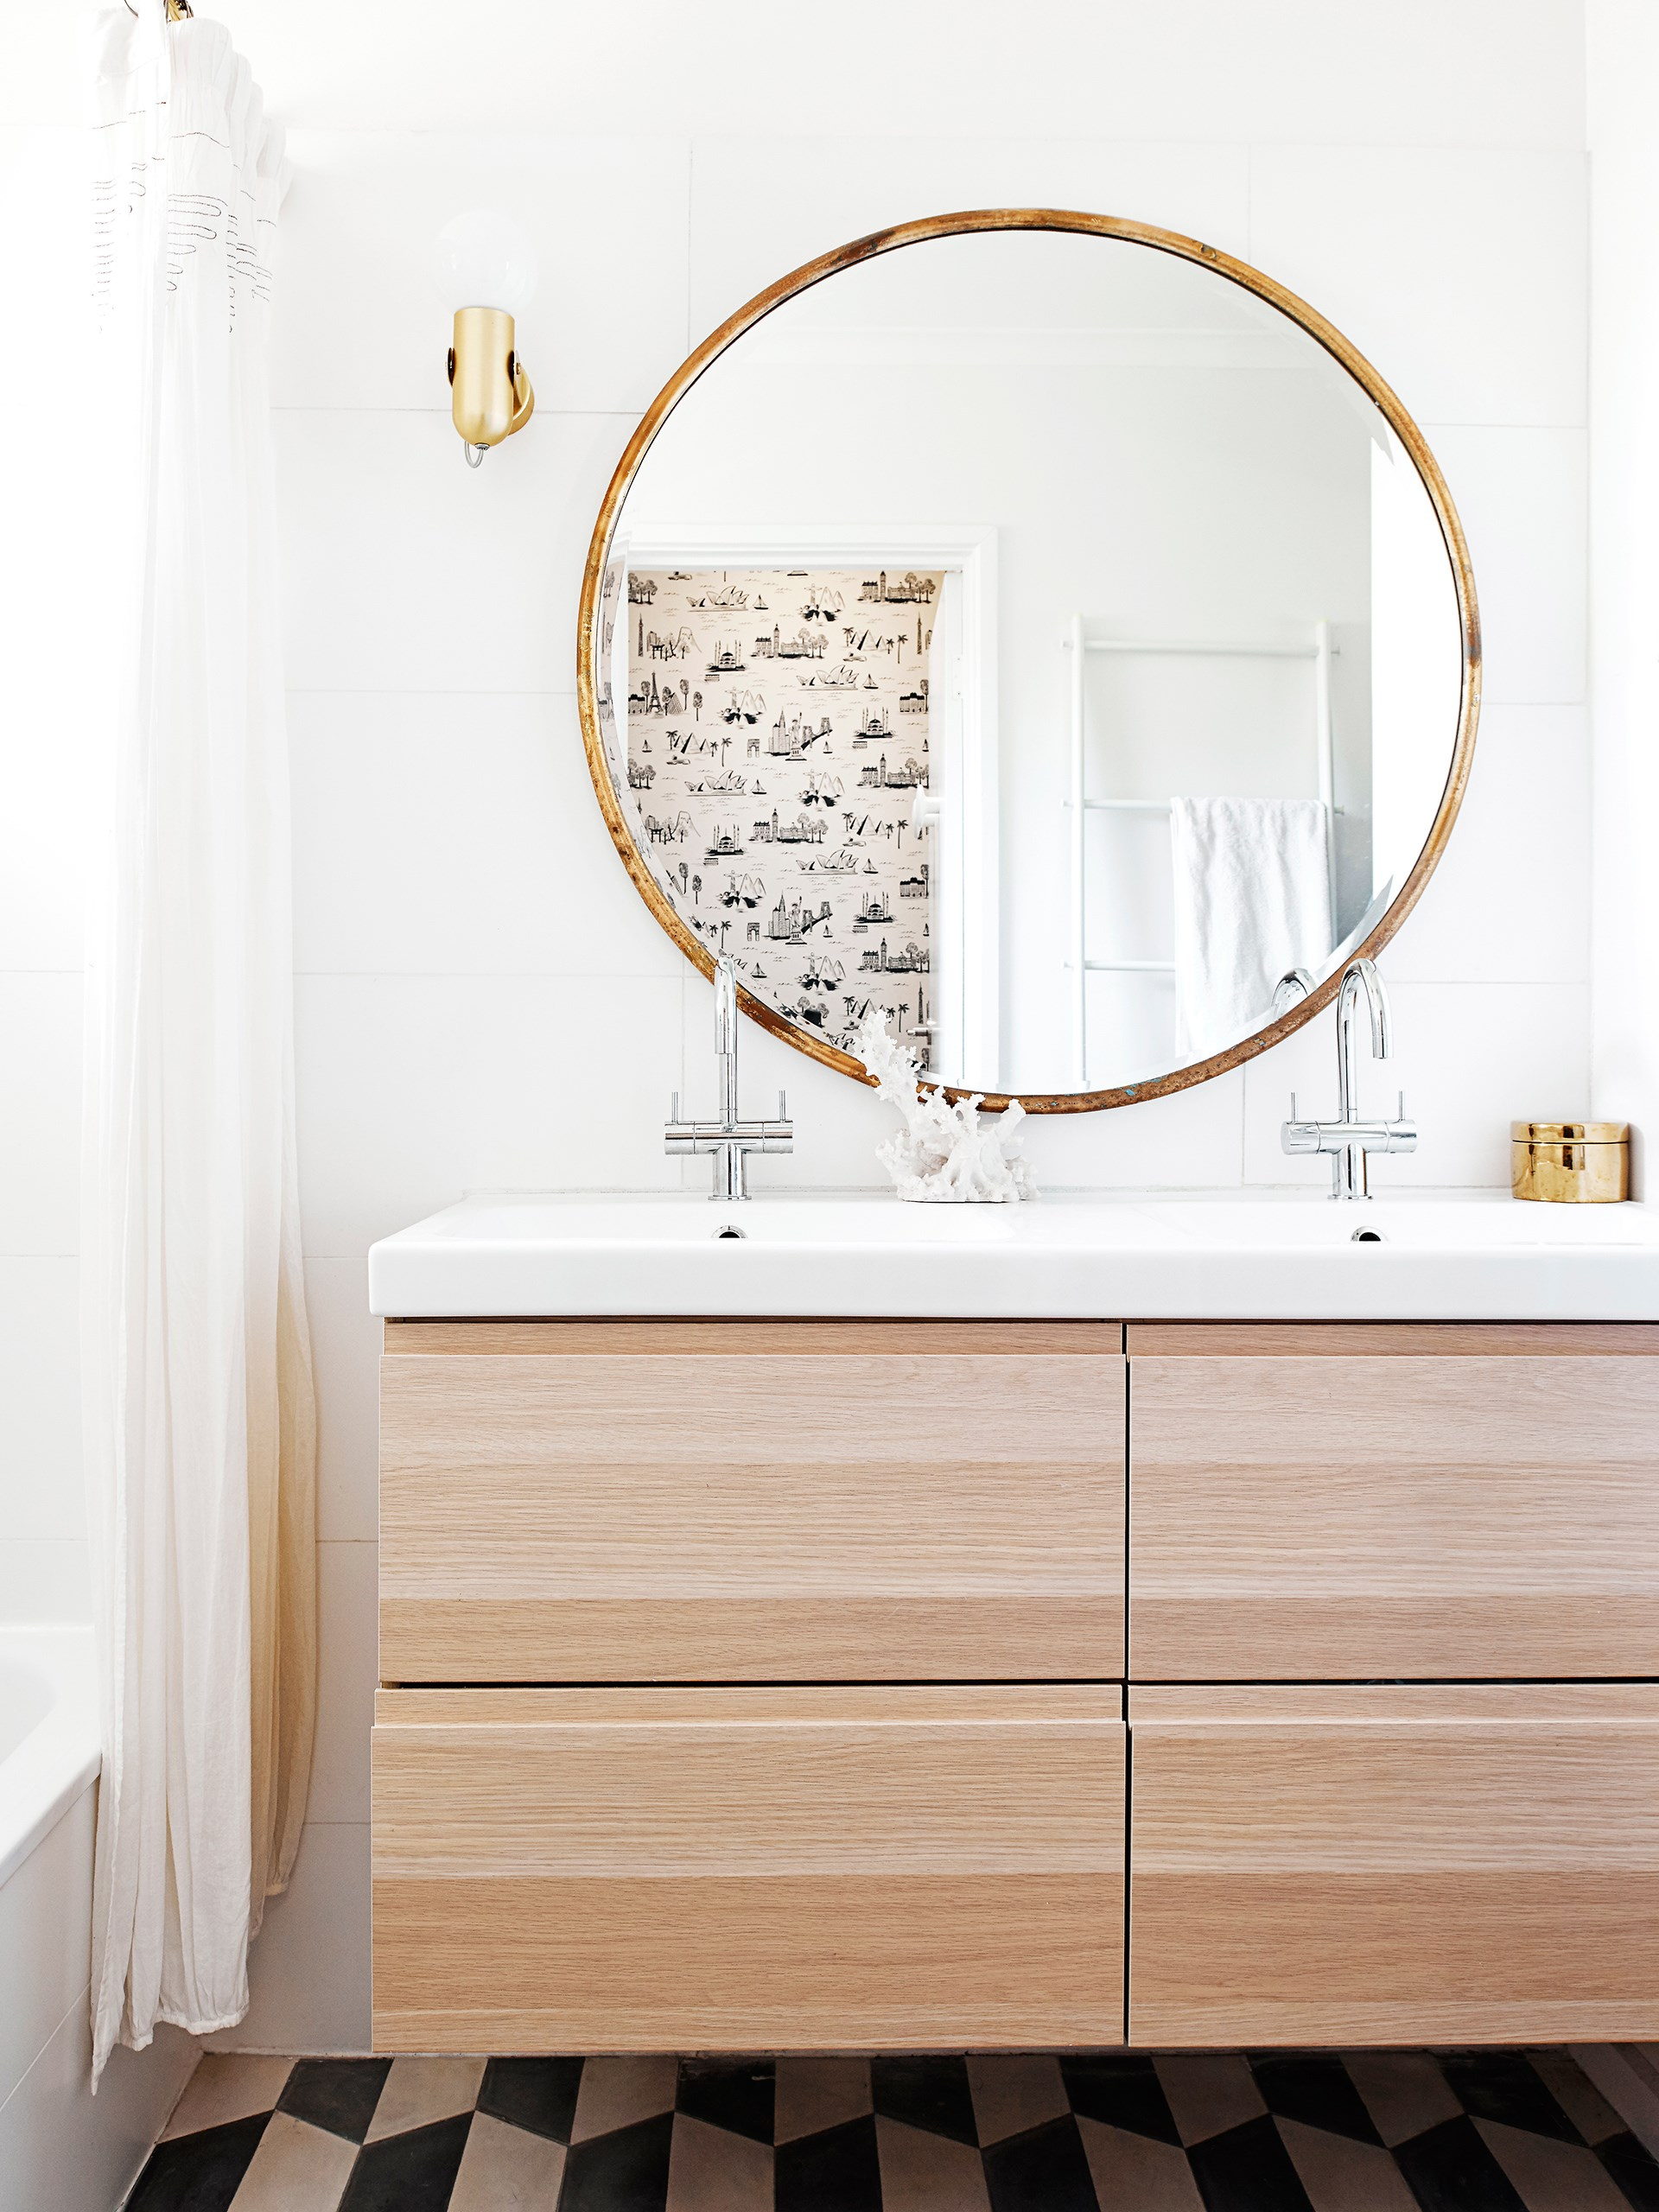 "Brass wall sconces add a luxe touch in the bathroom of this [Scani-retro unit](http://www.homestolove.com.au/interior-designer-lauren-lis-creative-home-renovation-2843|target=""_blank""). Photographer: Eve Wilson"